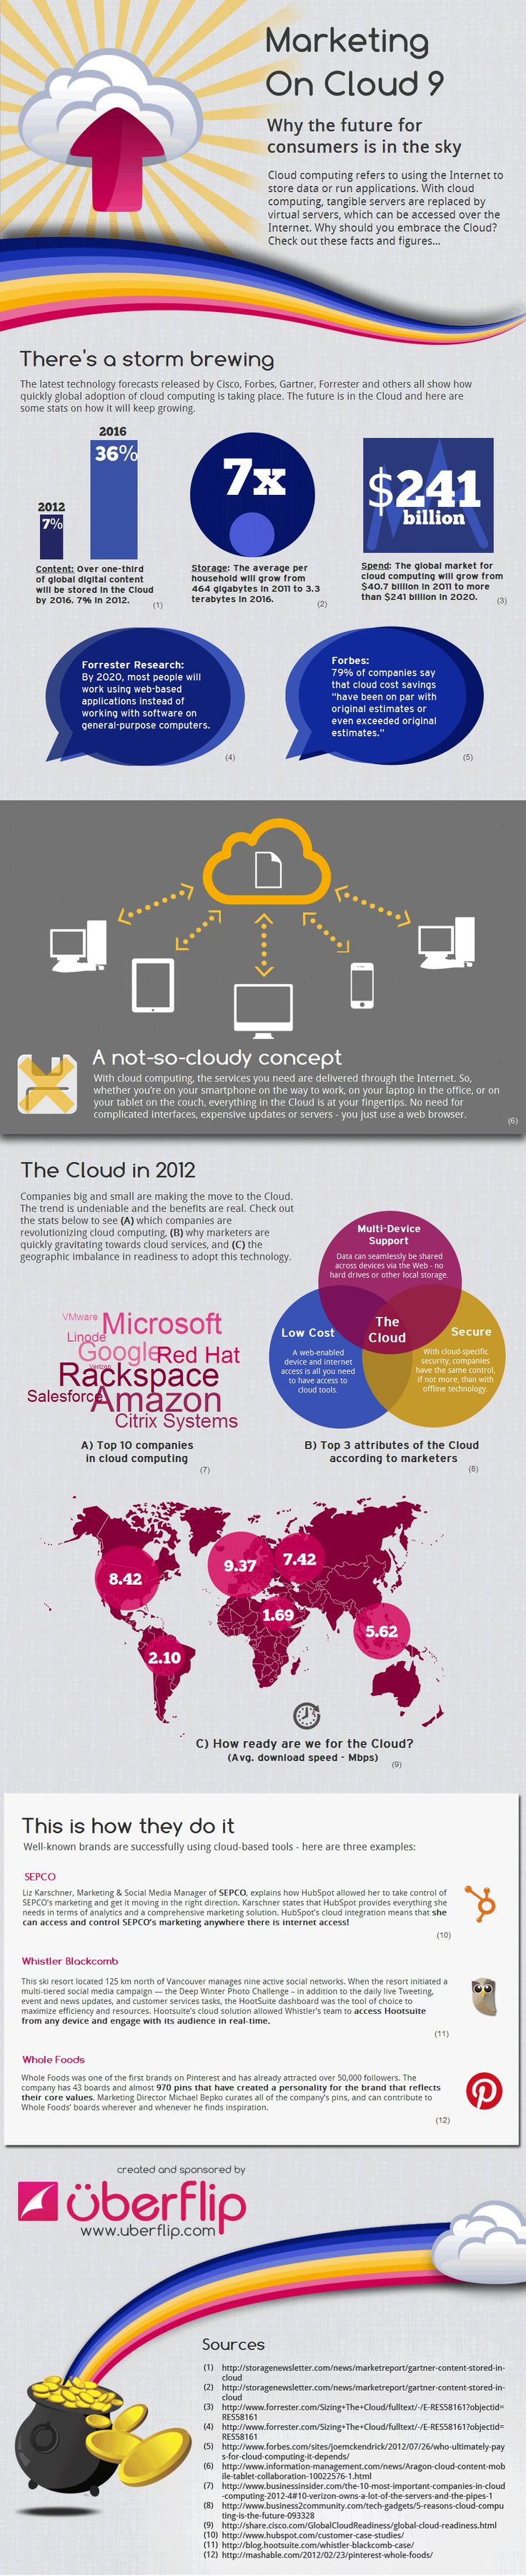 The infographic provides insightful facts and figures about the adoption rates of cloud computing, the readiness of different markets, as well as some